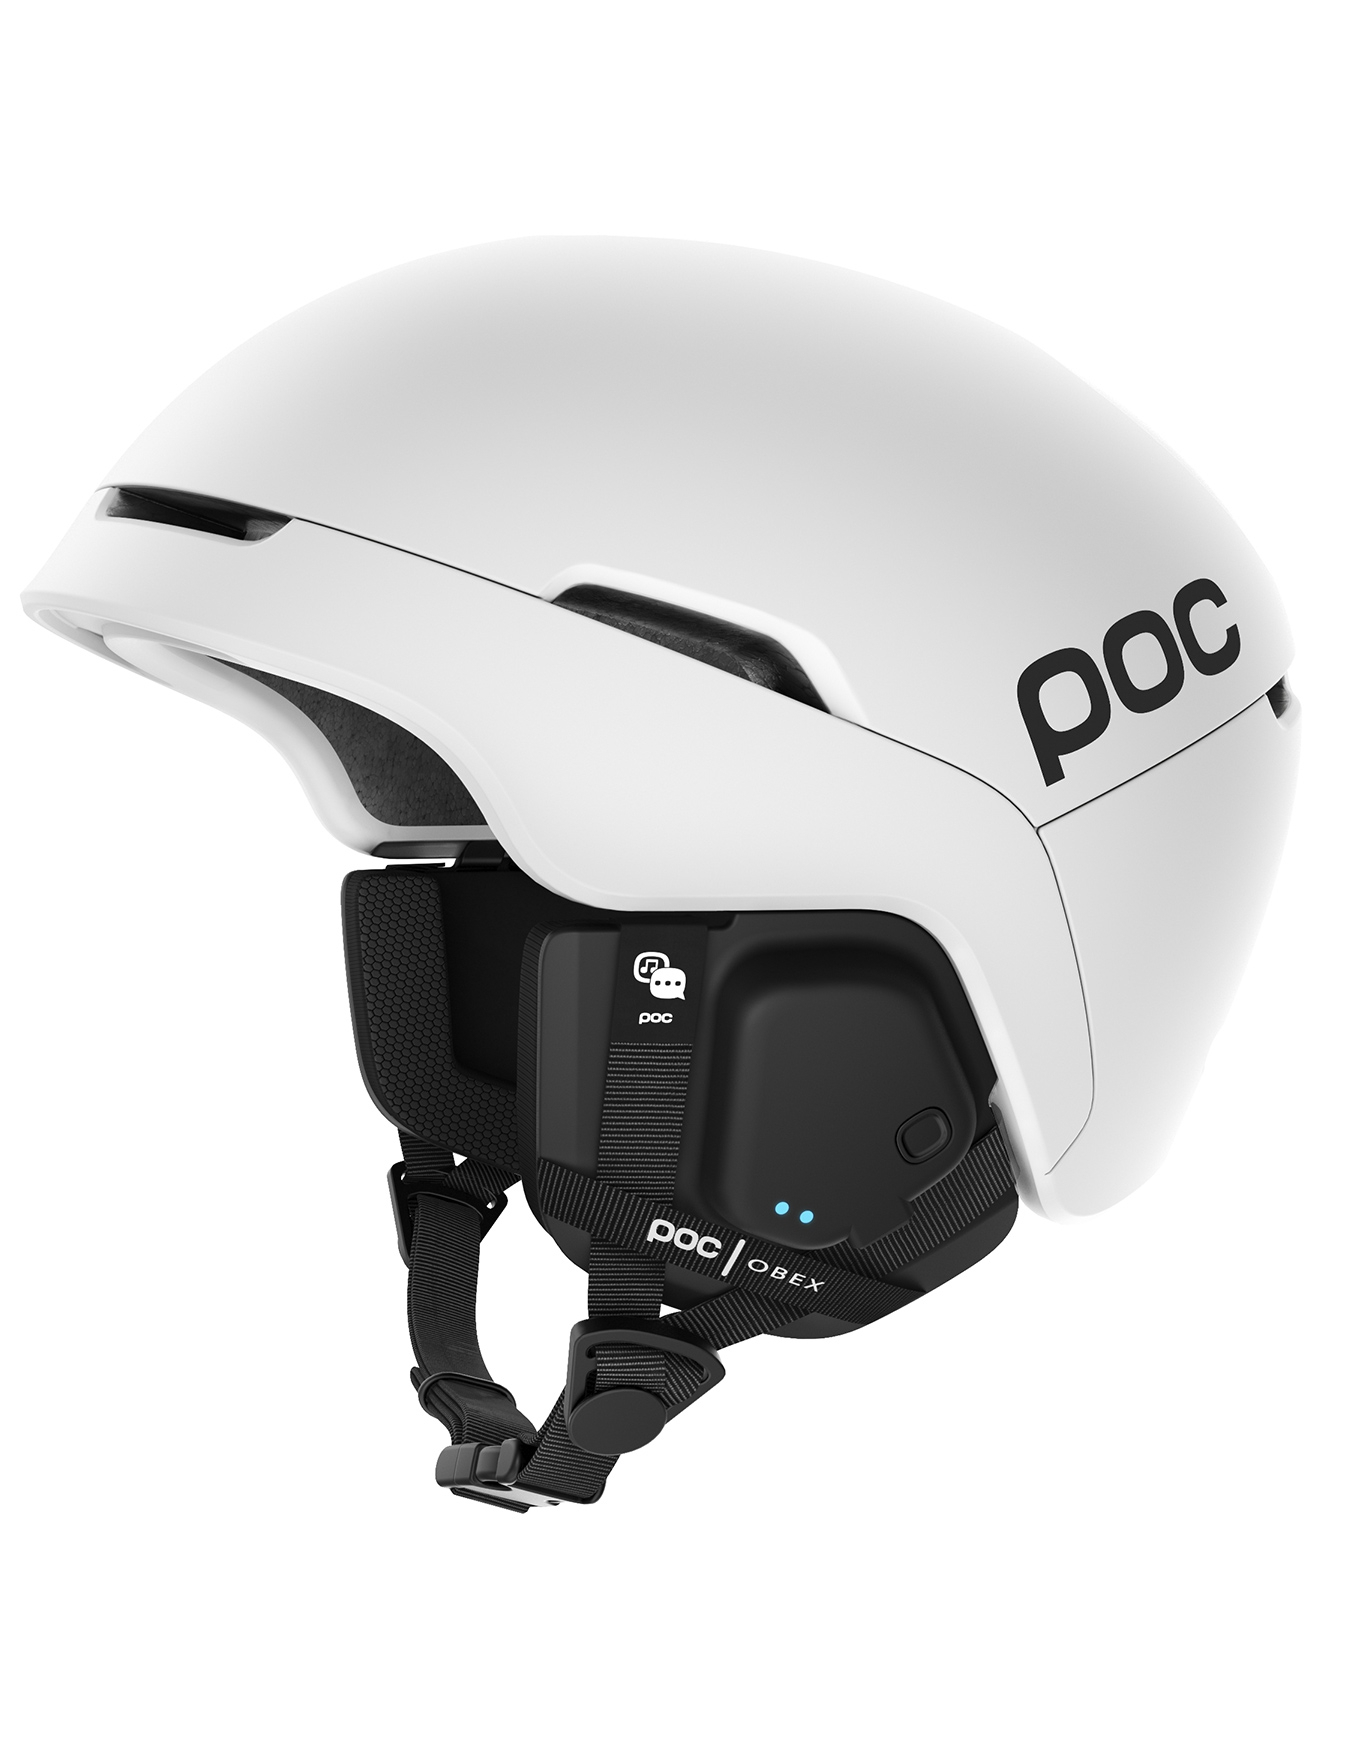 casque ski bluetooth poc